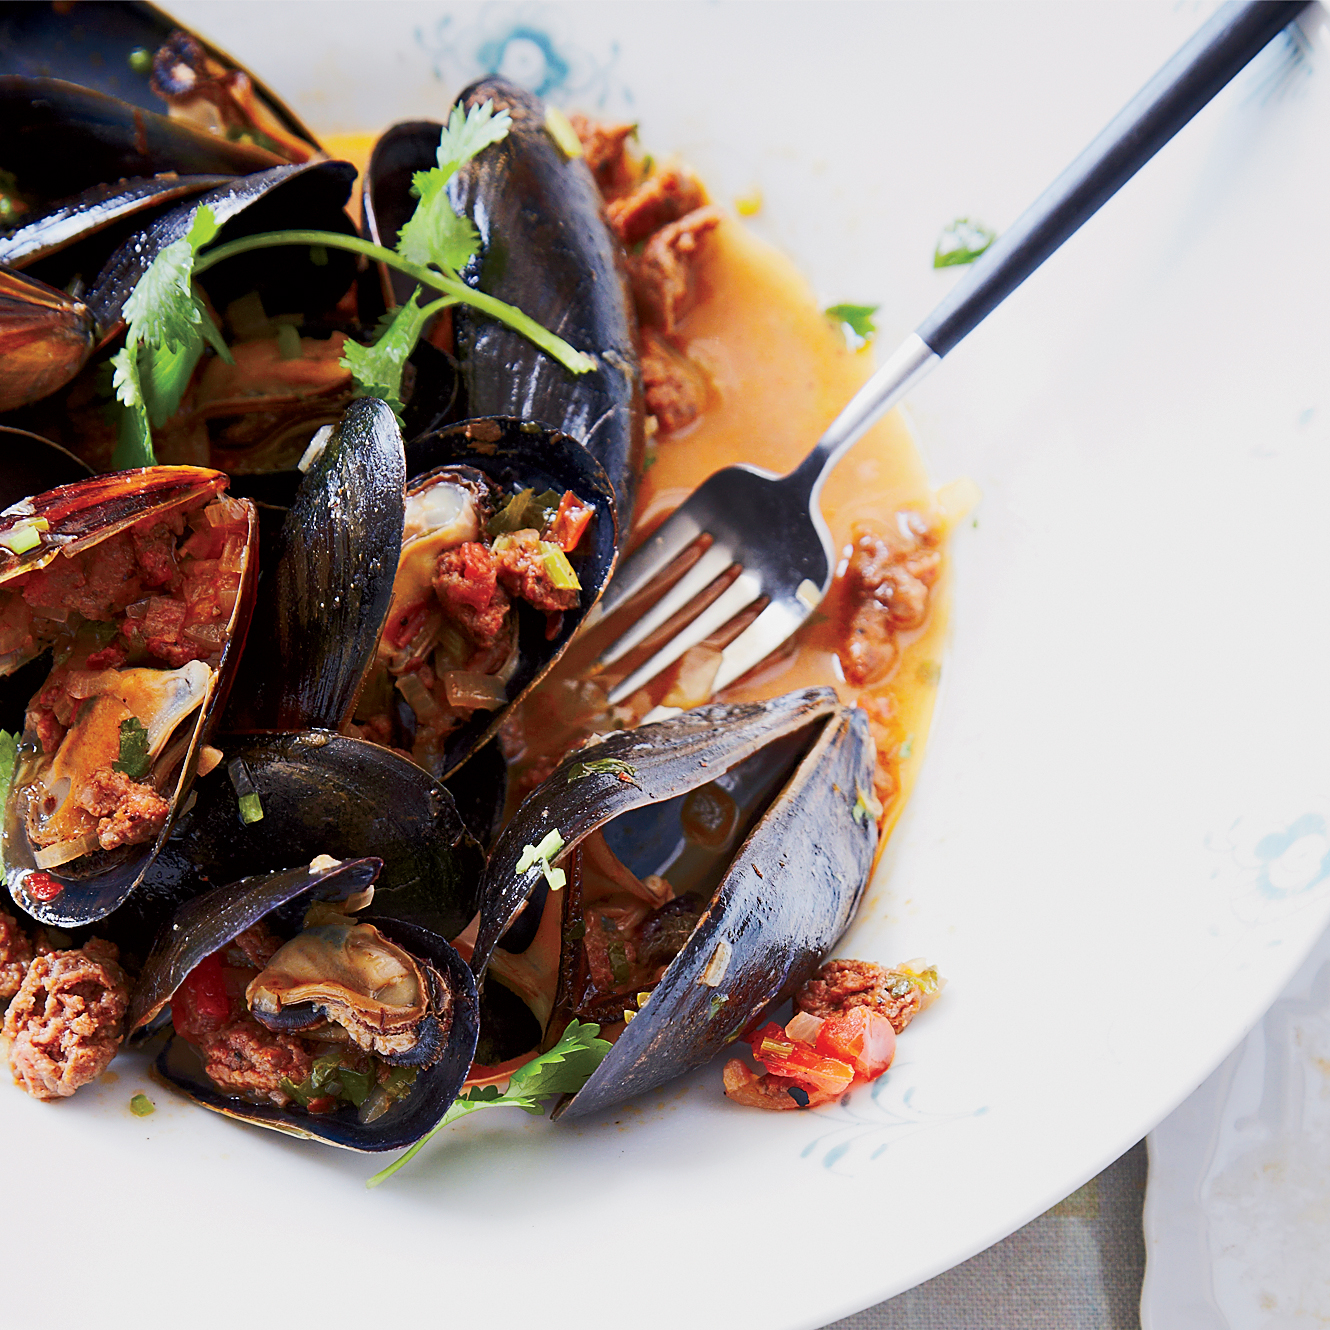 201404-r-mussels-with-merguez-sausage.jpg